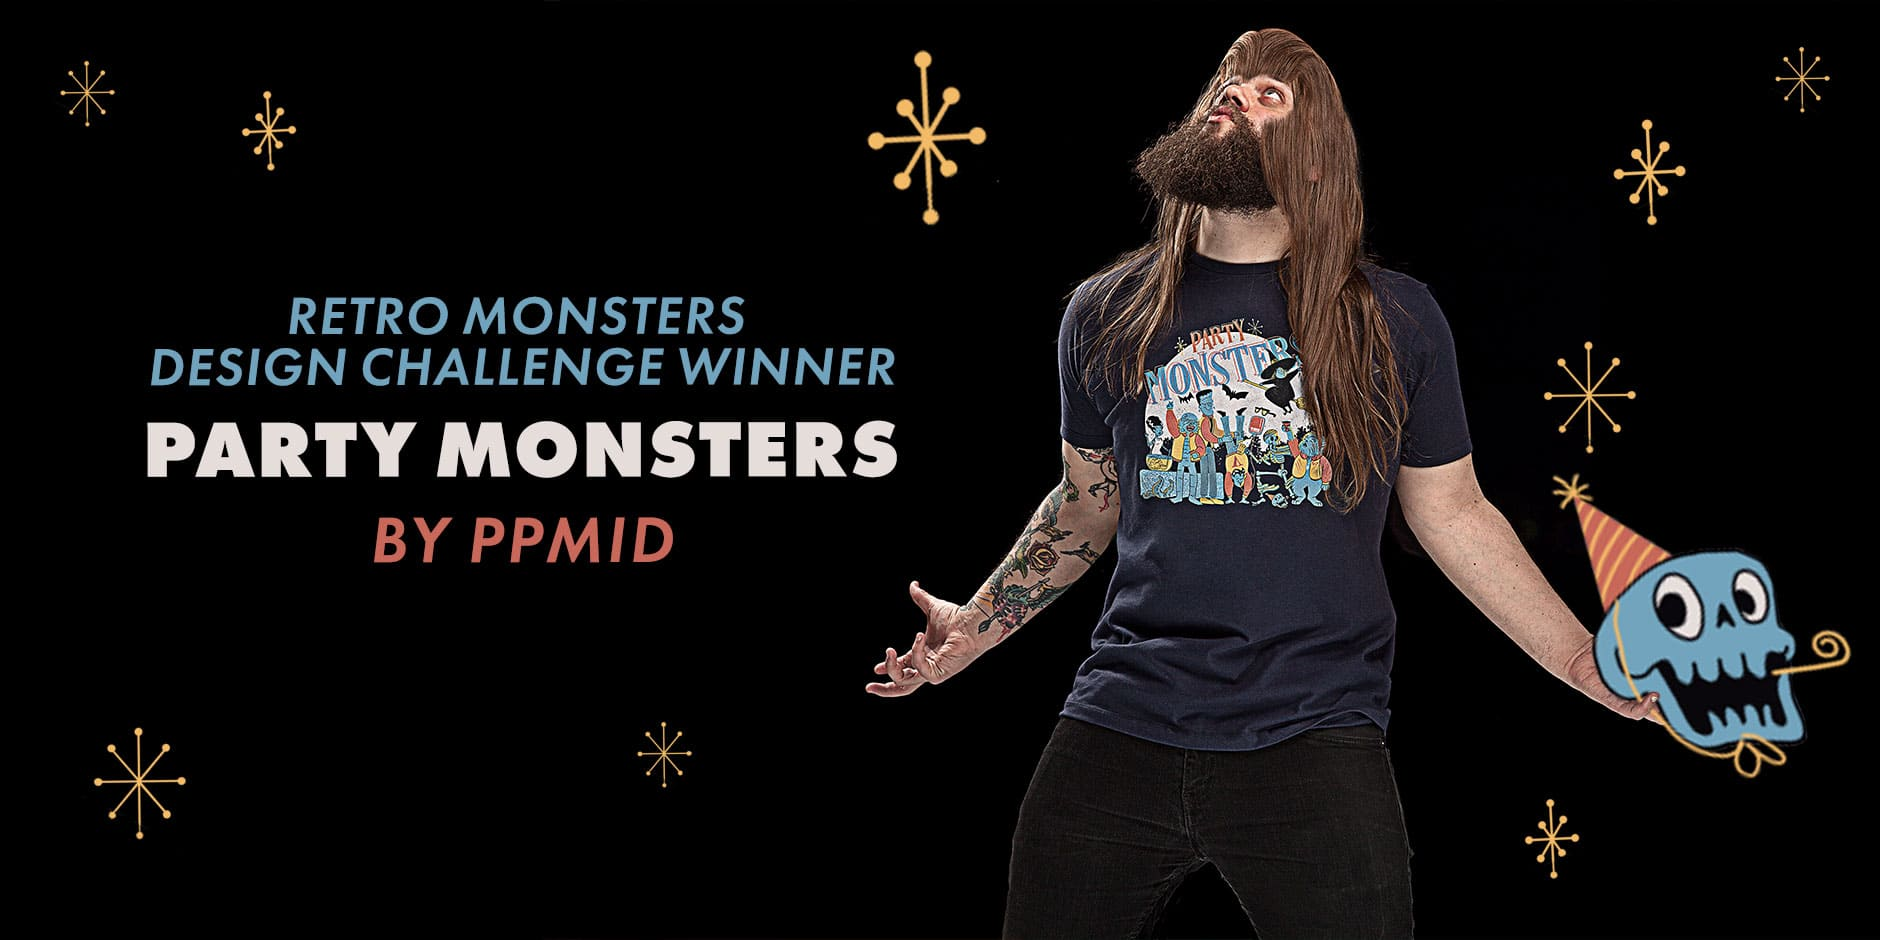 Featured Design: Party Monsters by PPMID